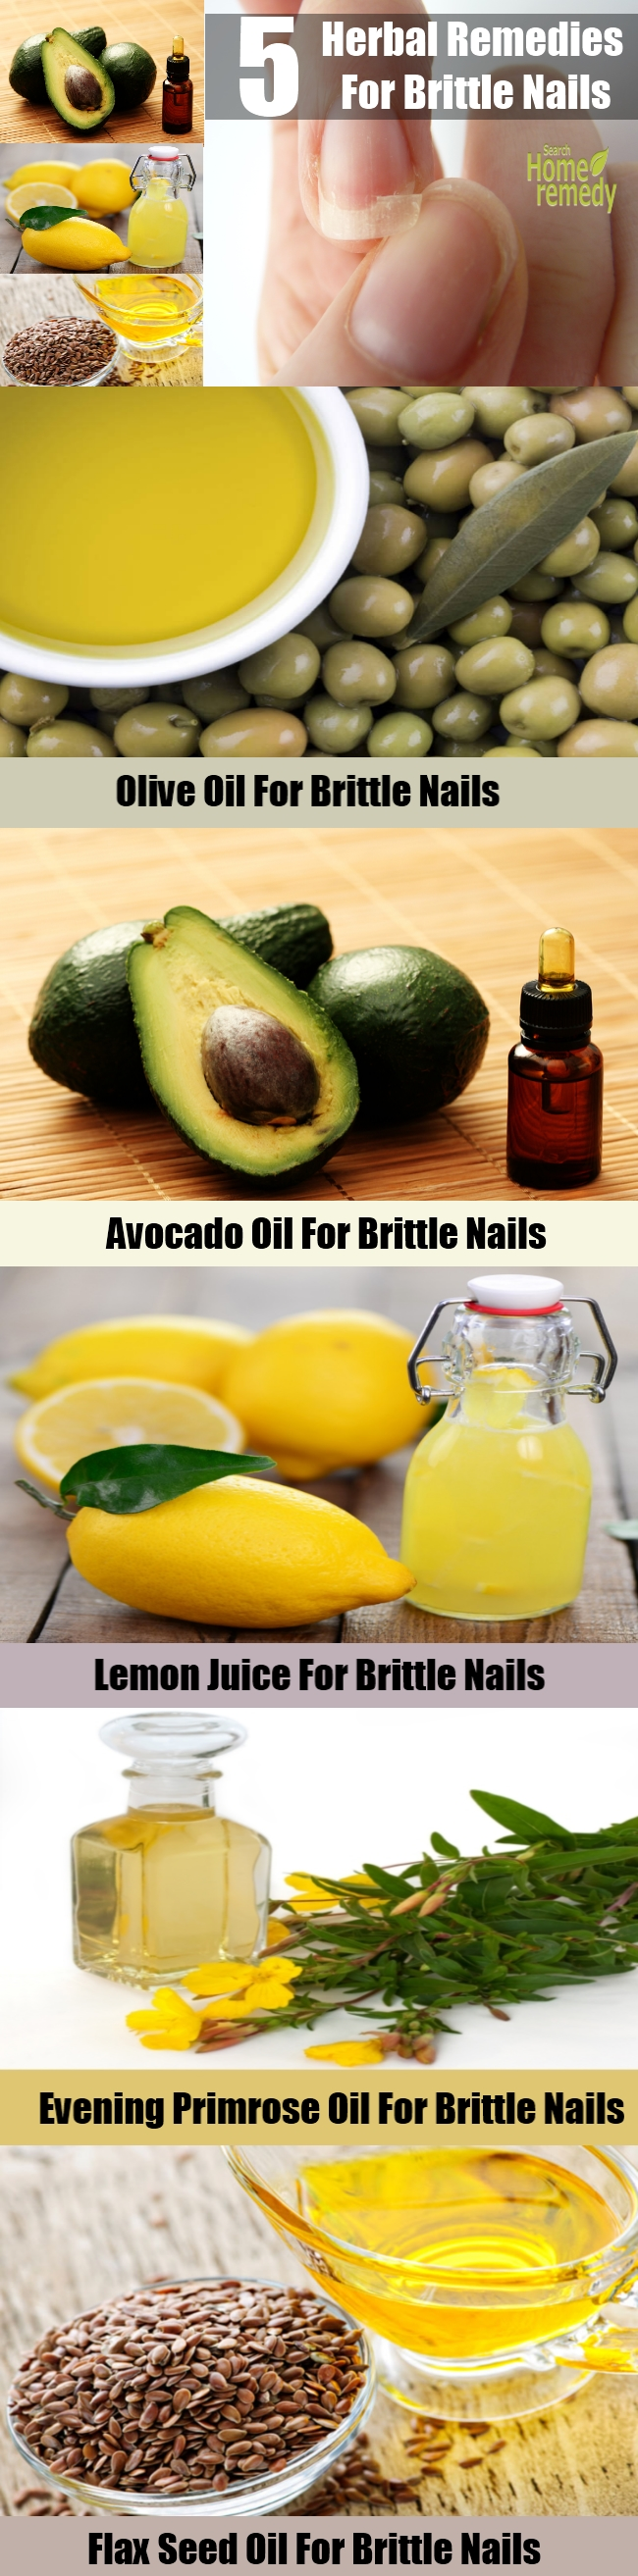 5 Herbal Remedies For Brittle Nails